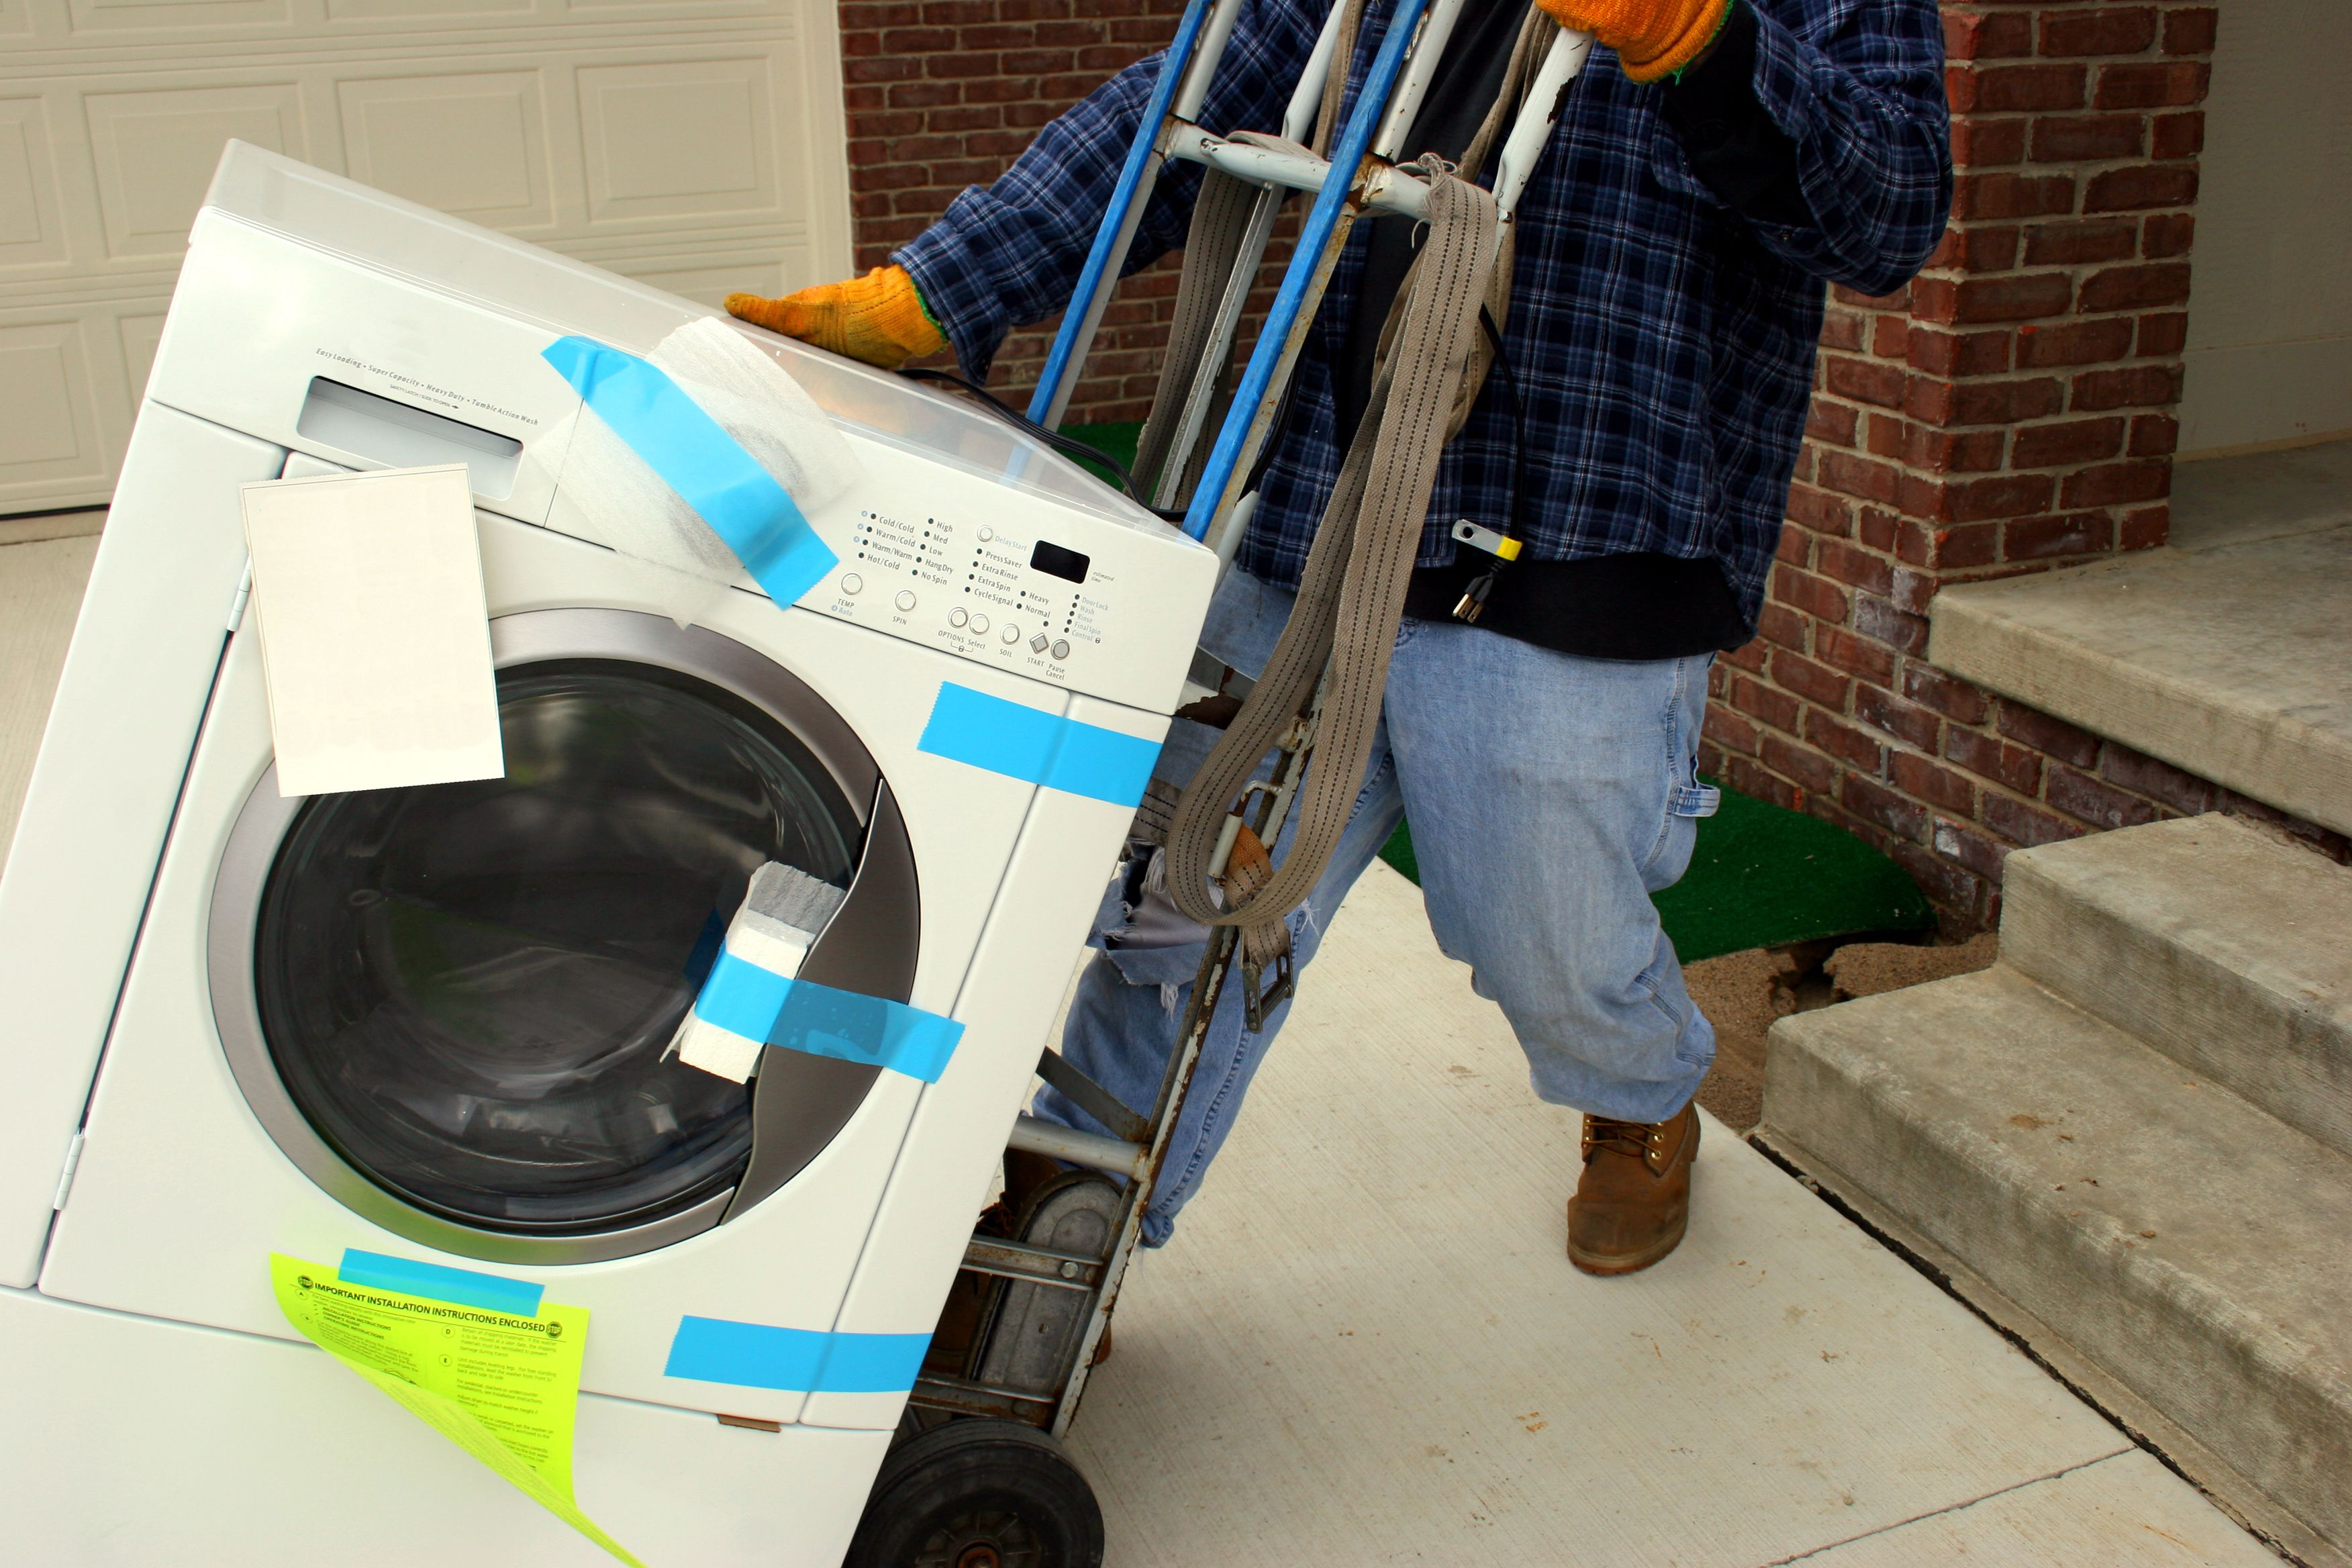 How To Disconnect And Move A Clothes Washer